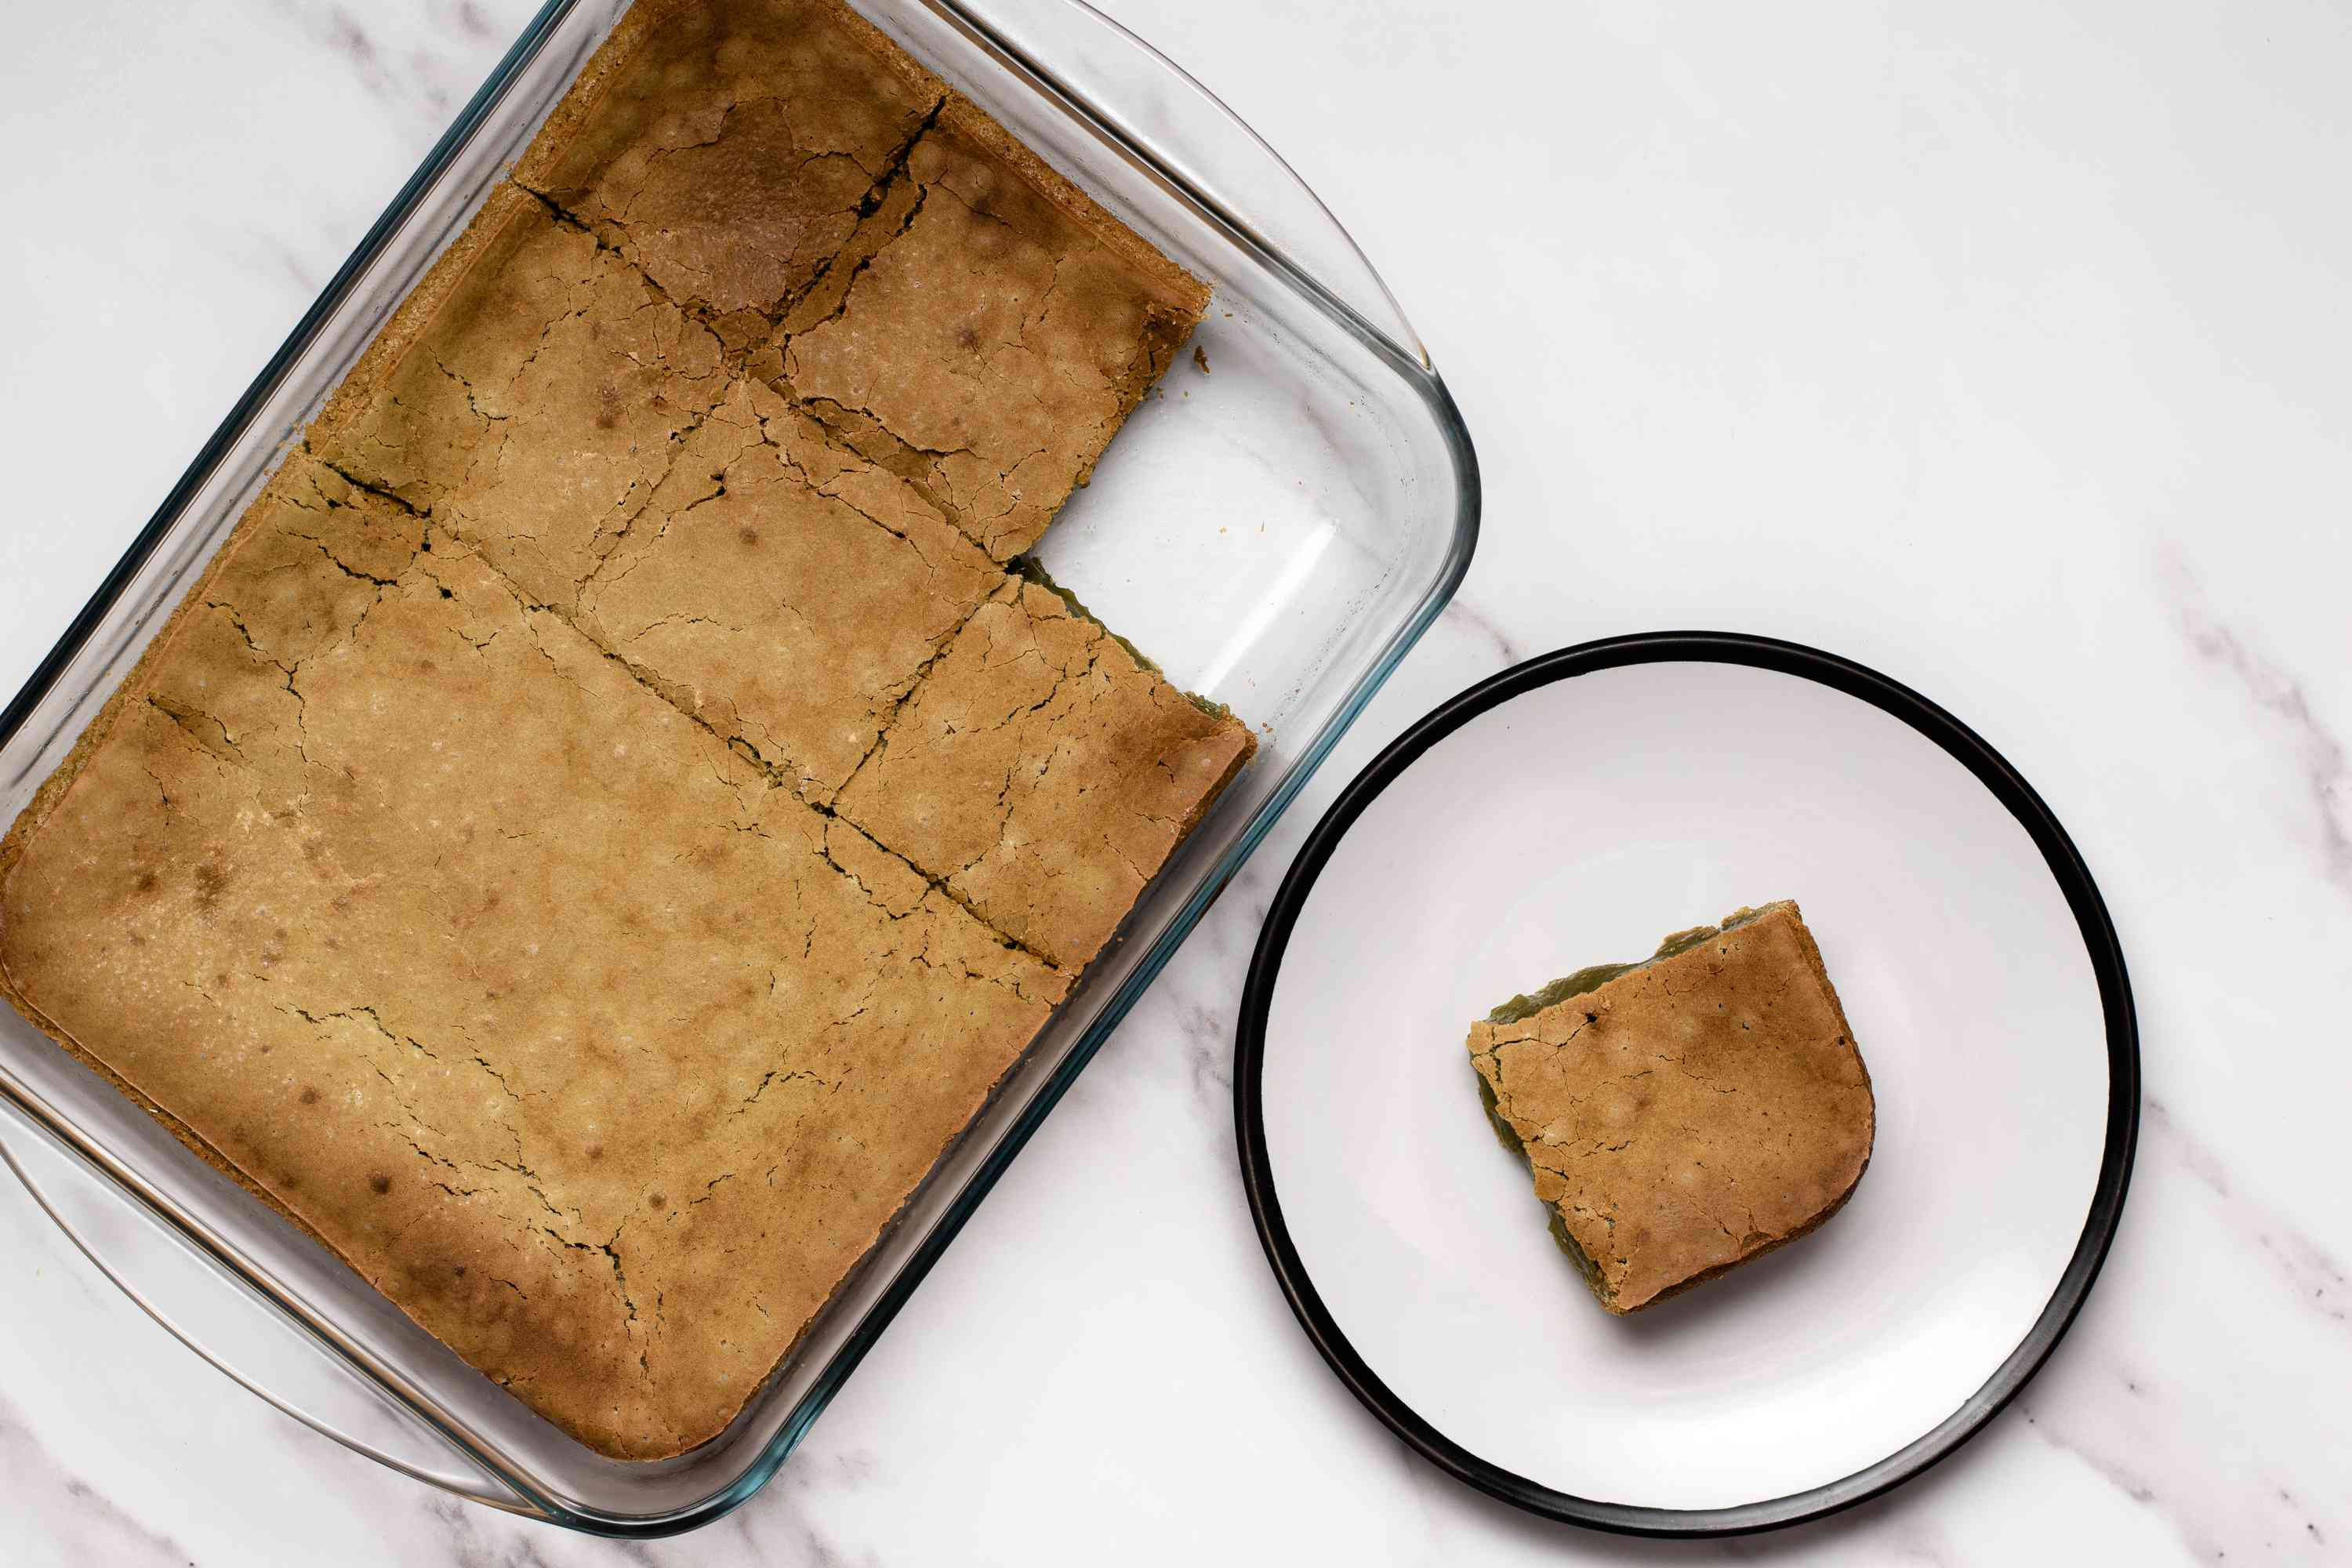 baked mochi in a baking dish, piece of baked mochi on a plate